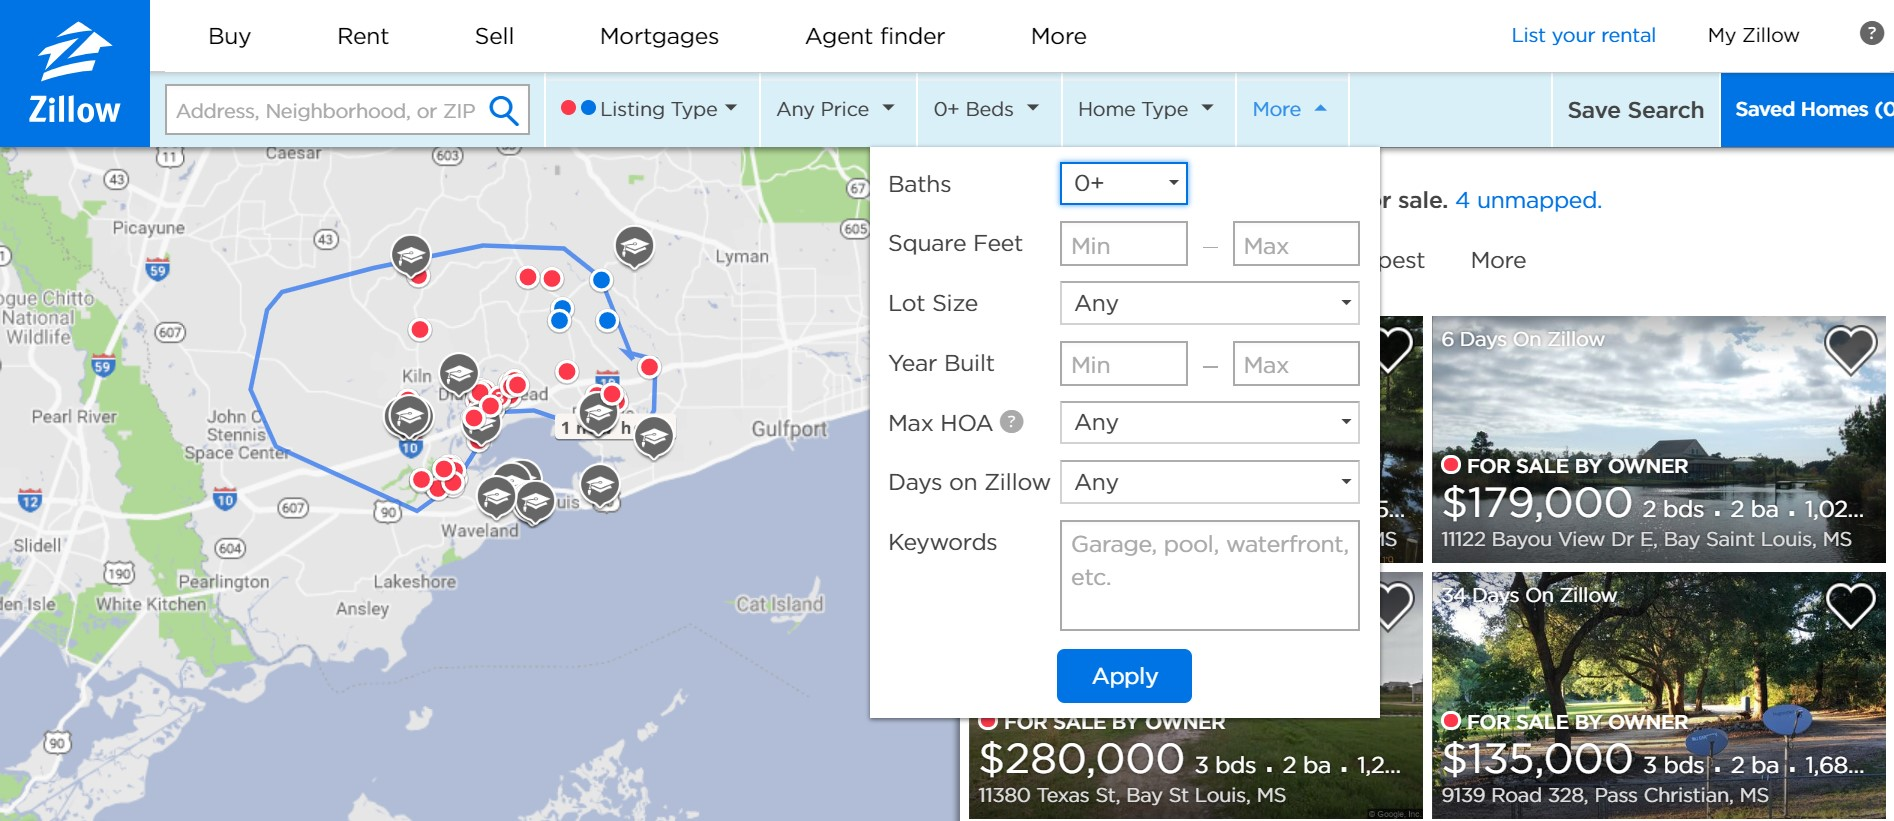 Zillow search filters